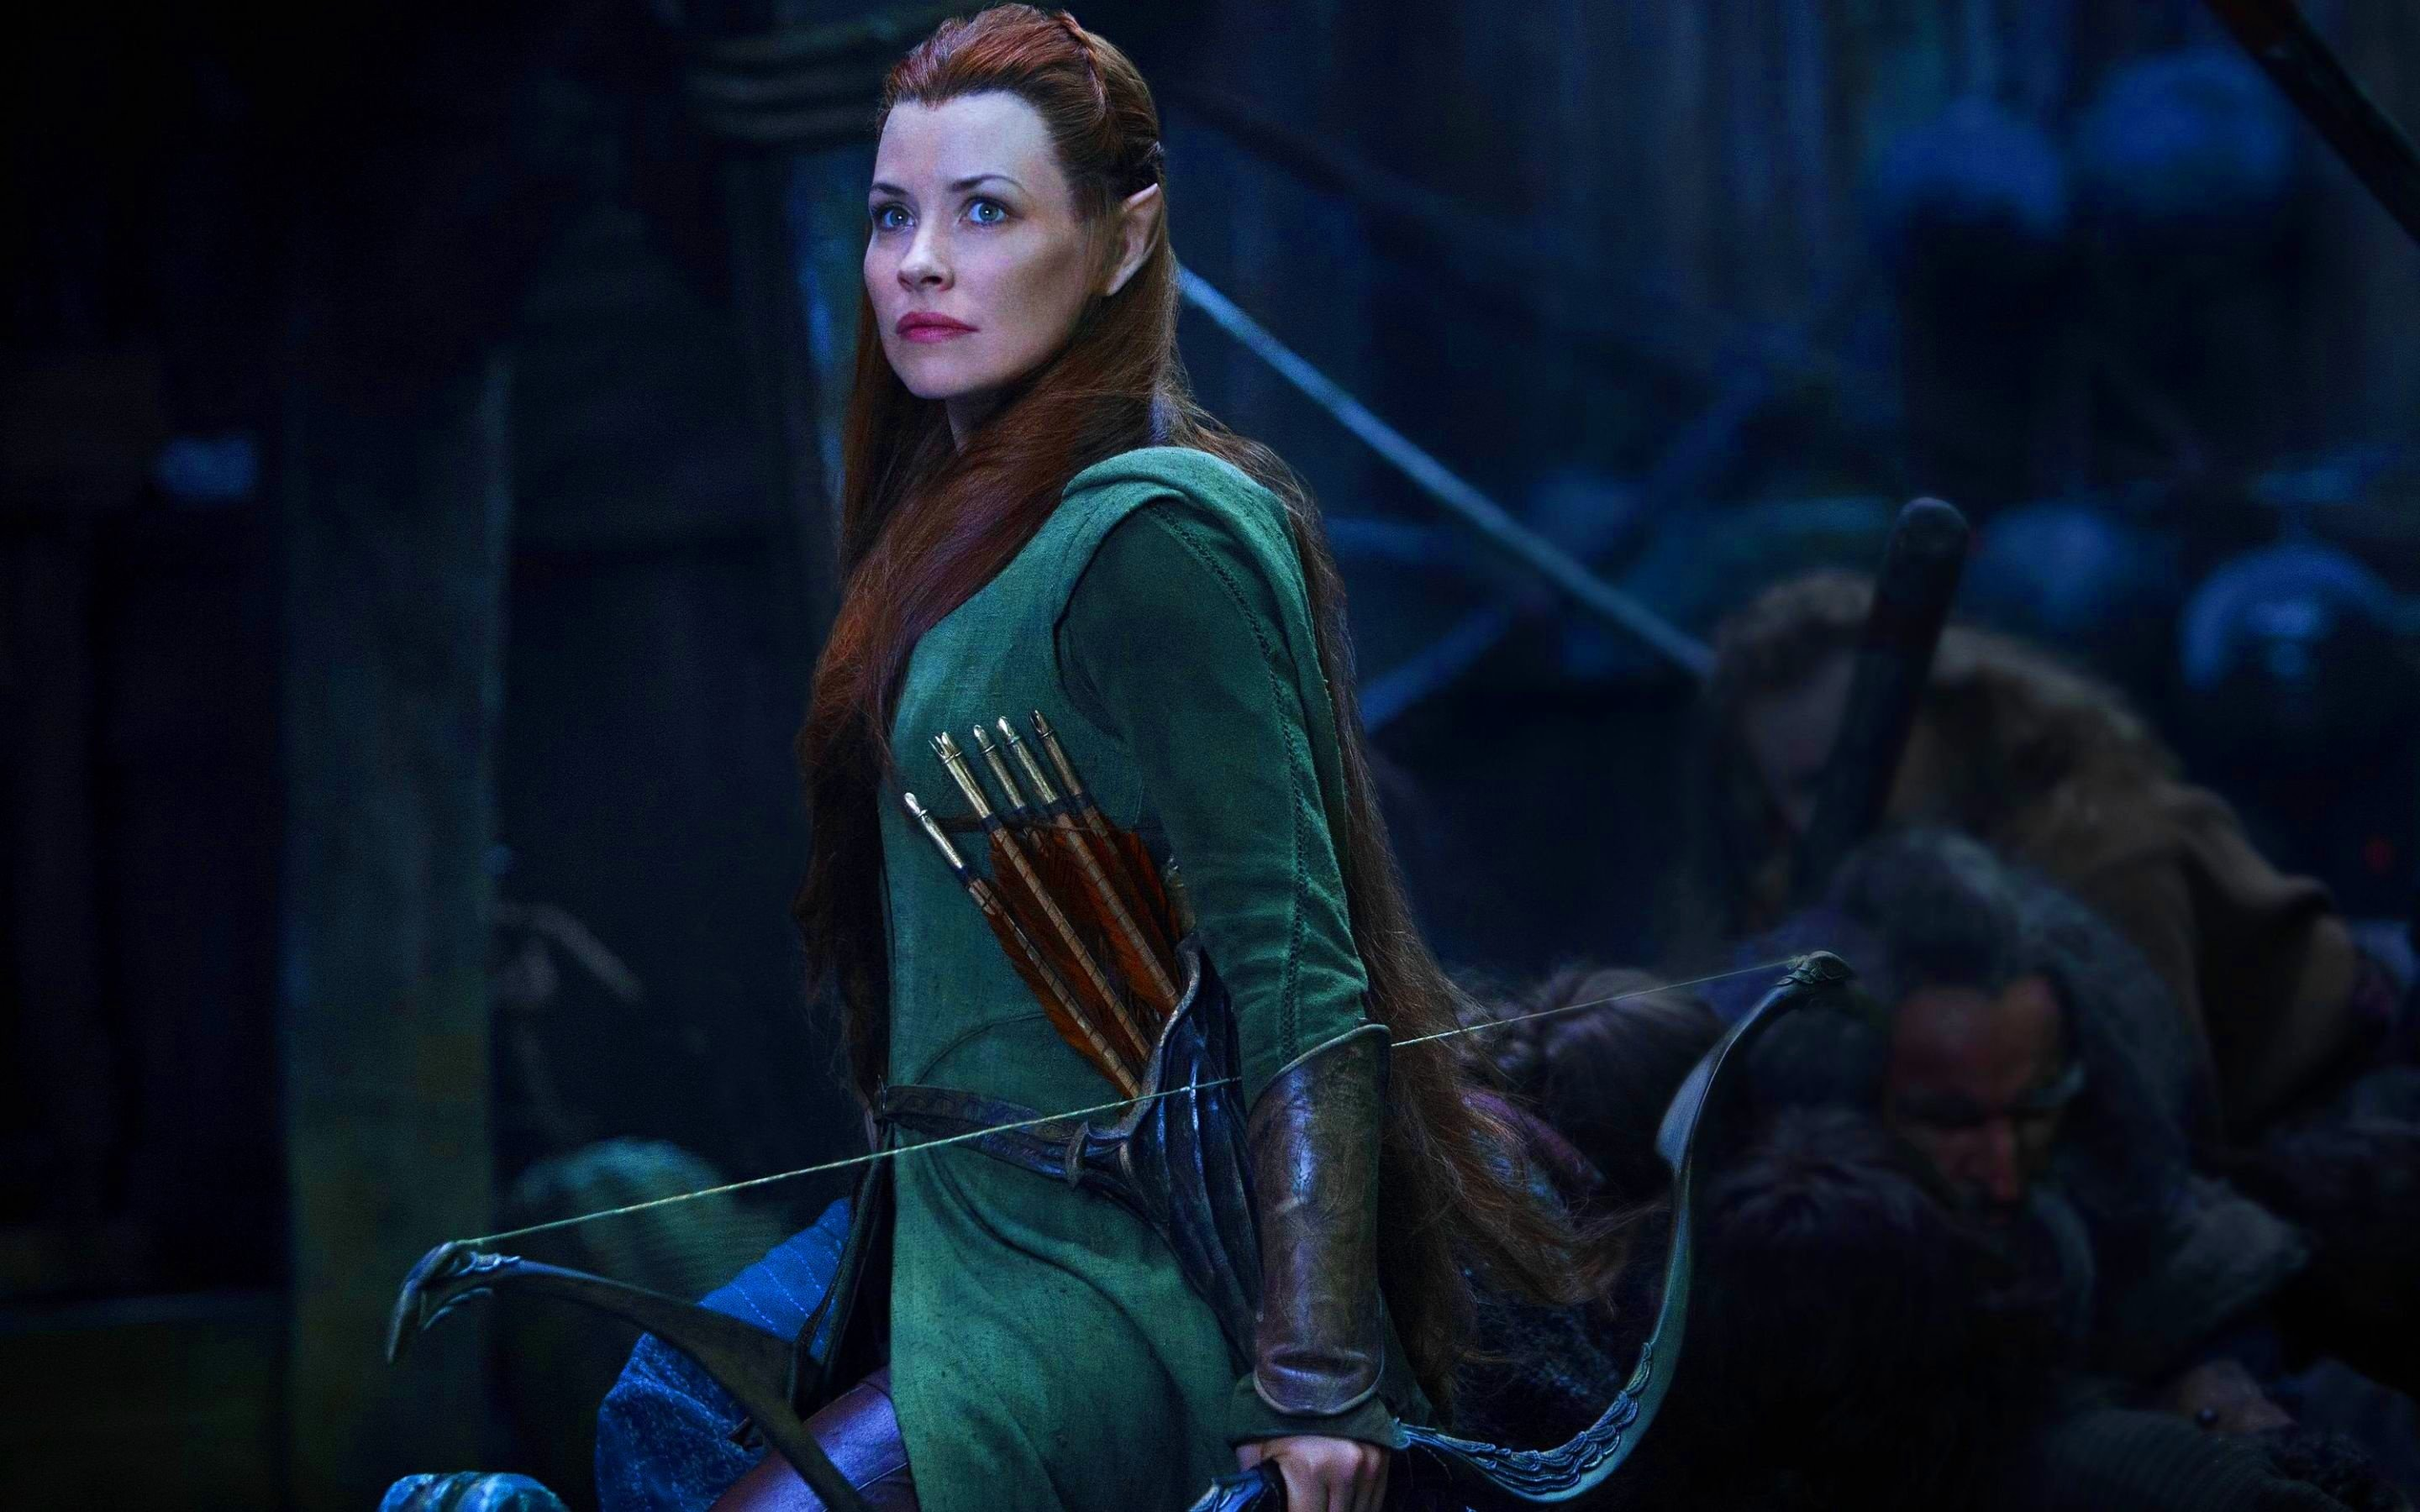 Evangeline Lilly In The Hobbit 2014 Wallpapers   2880x1800   937667 2880x1800